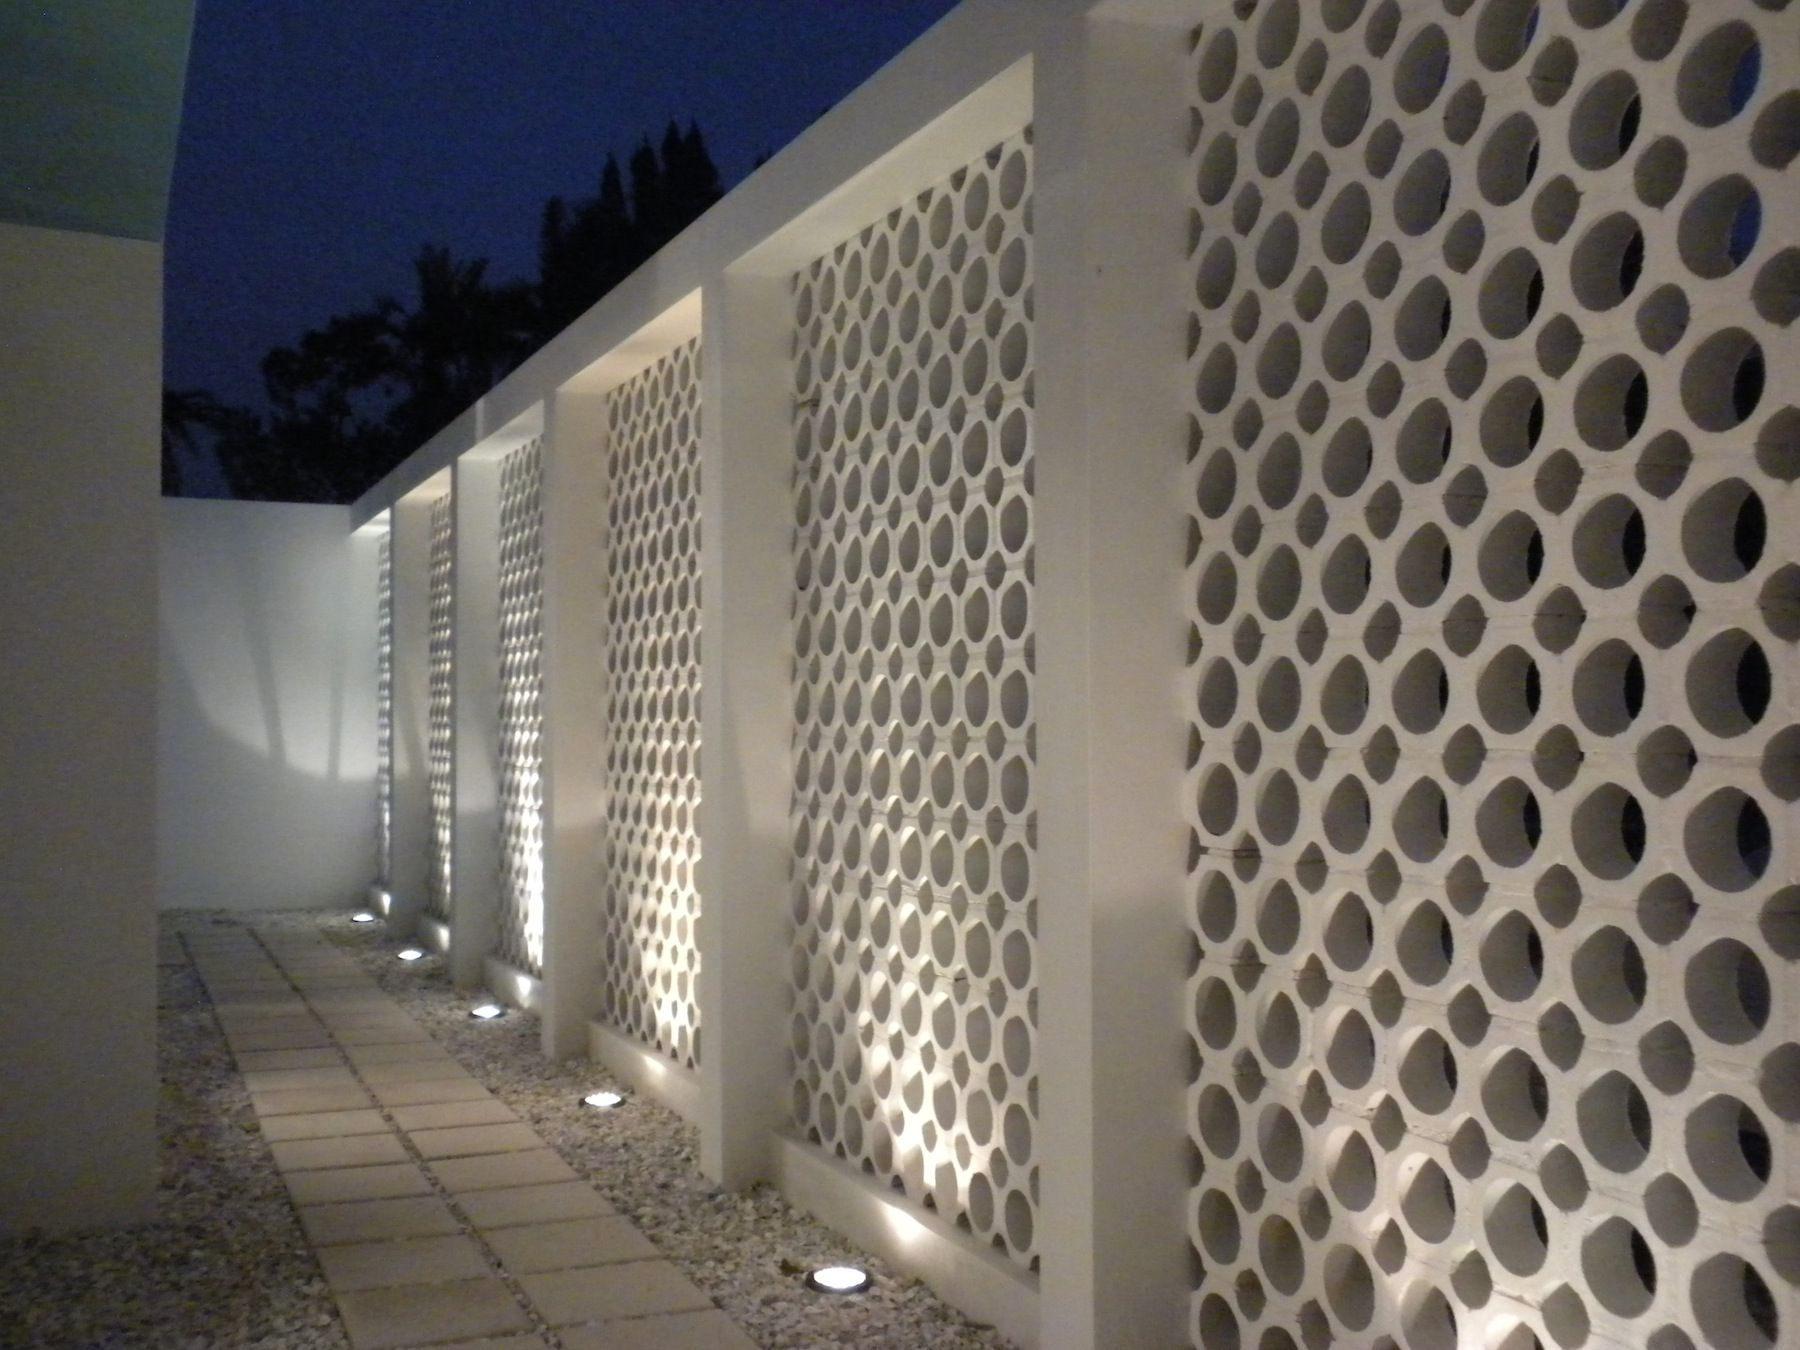 Decorative Block Wall austral masonry - pavers, concrete blocks & retaining wall blocks